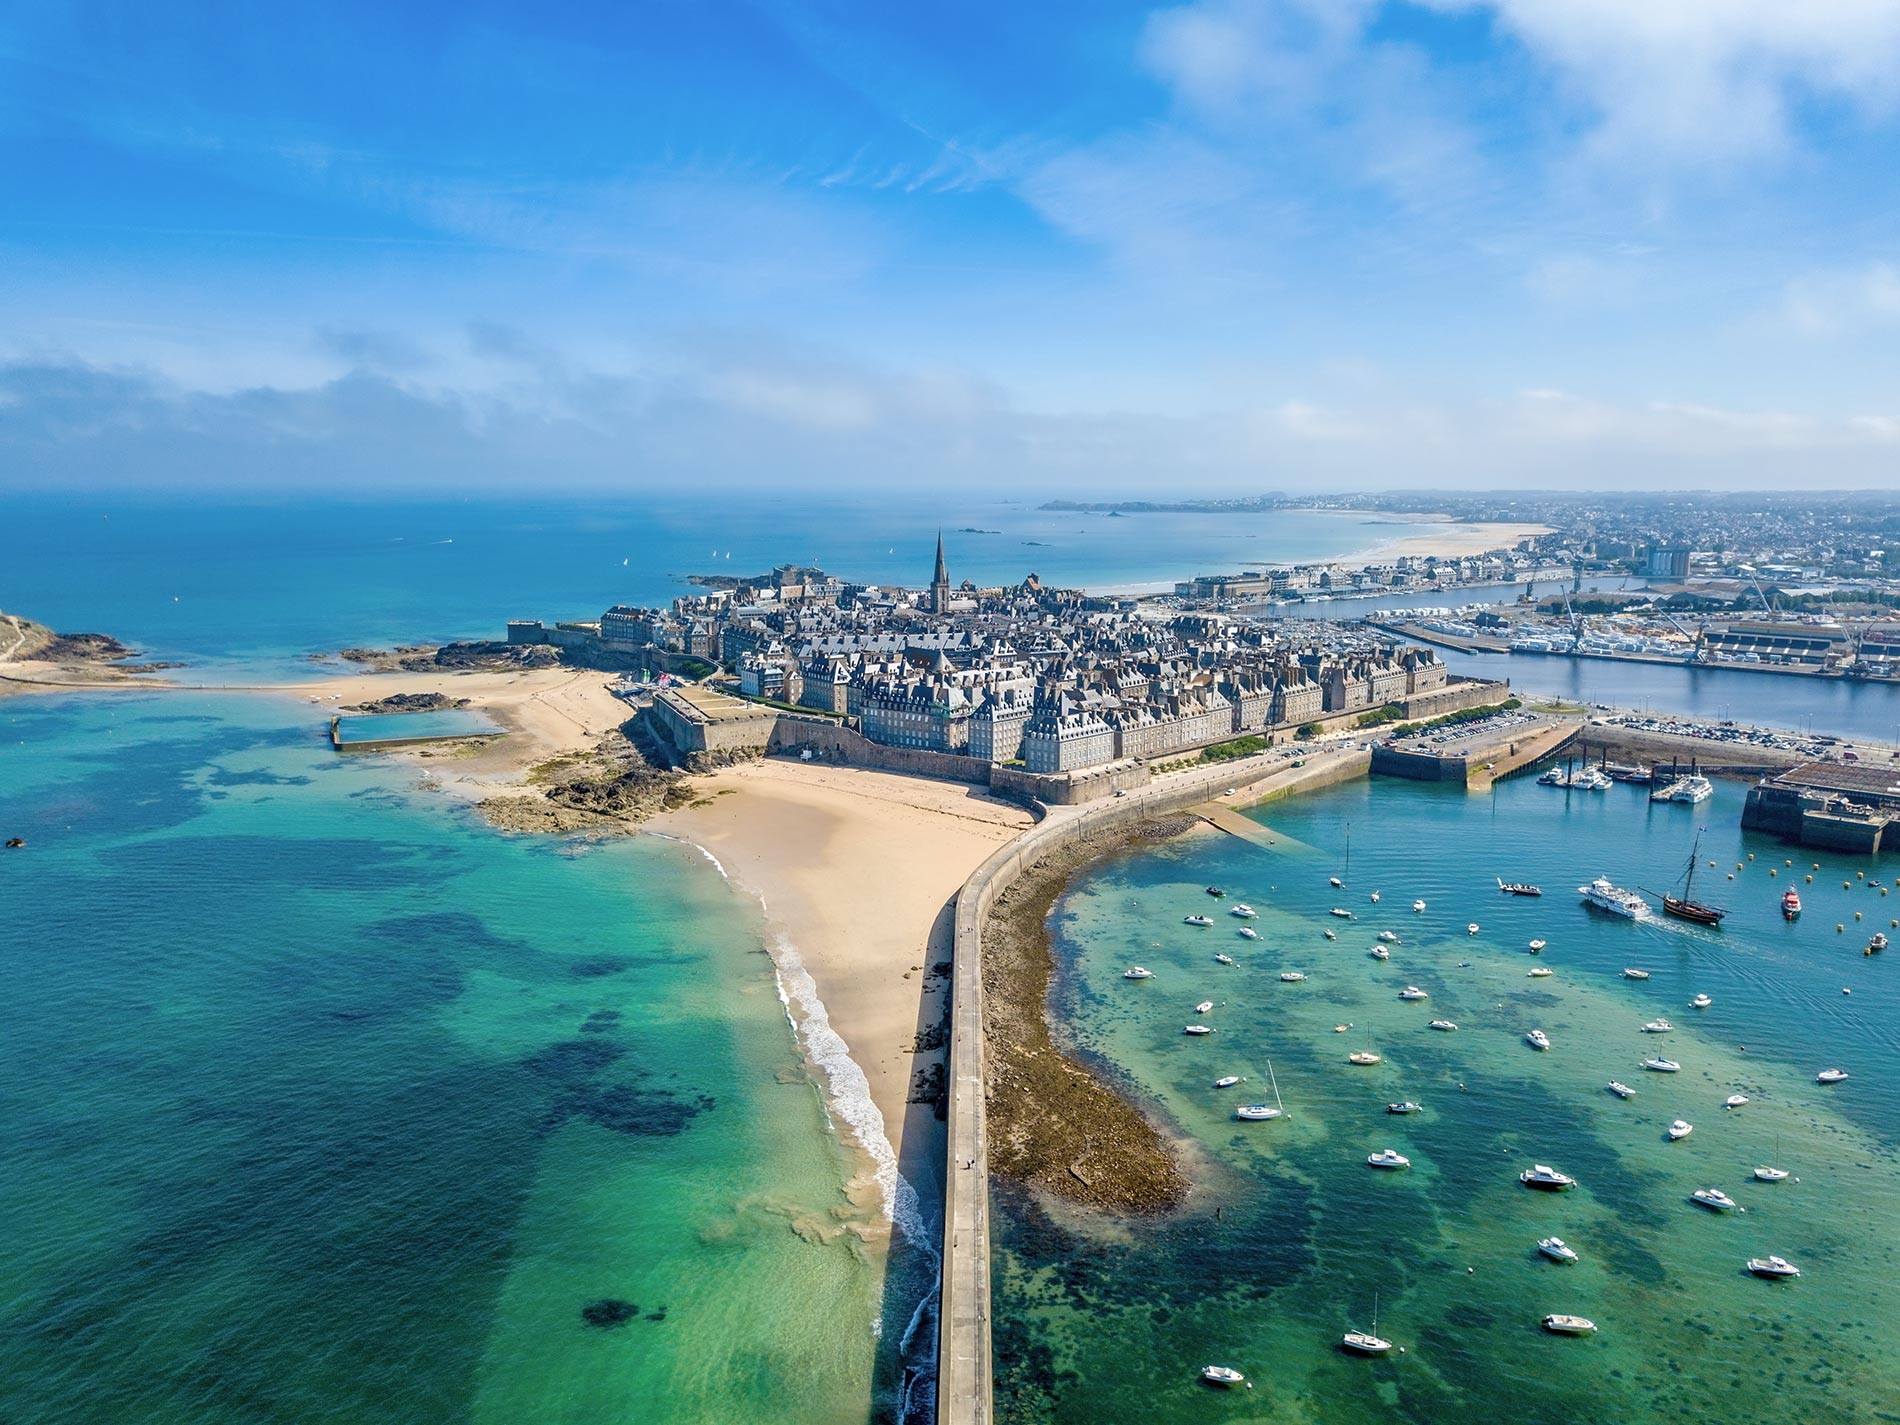 Camping Saint Malo Location Camping Saint Malo Avec Yelloh Village